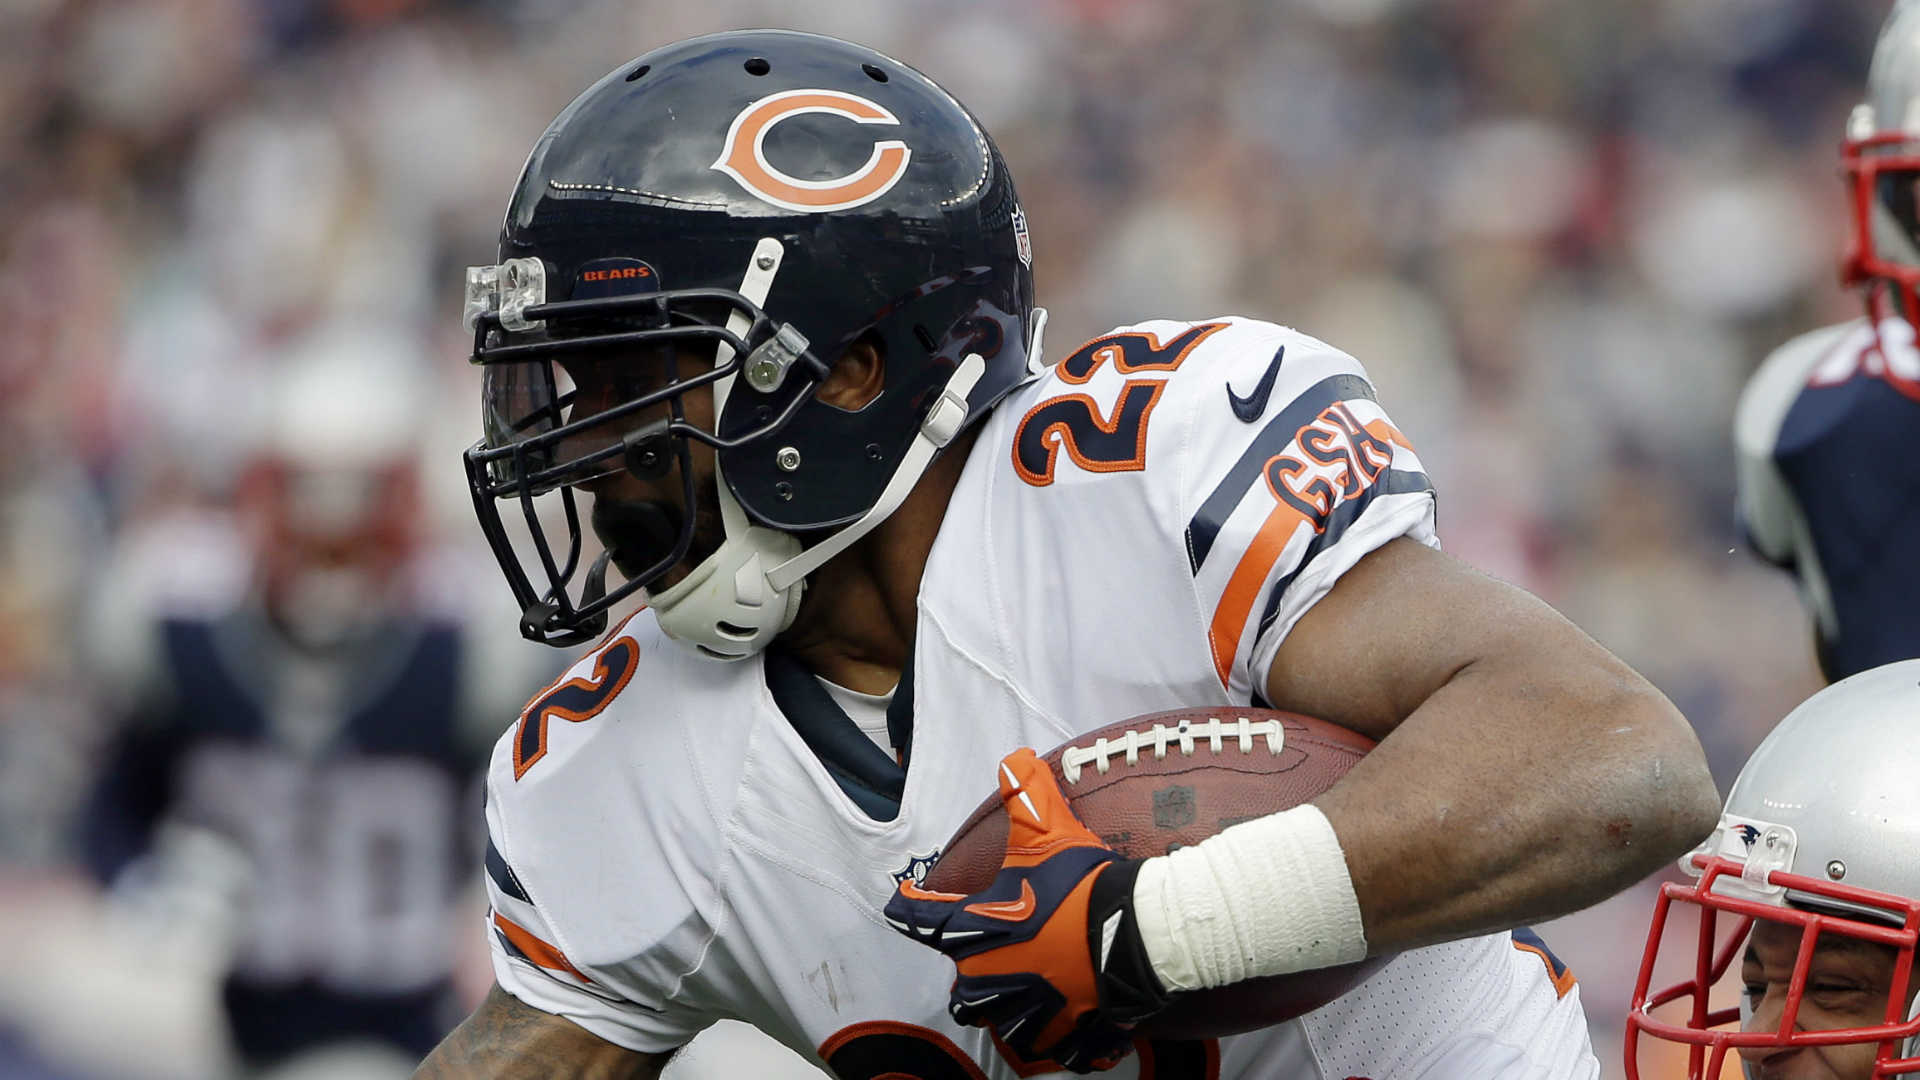 Projecting Bears depth chart: Cutler, Forte, Jeffery behind Chicago overhaul